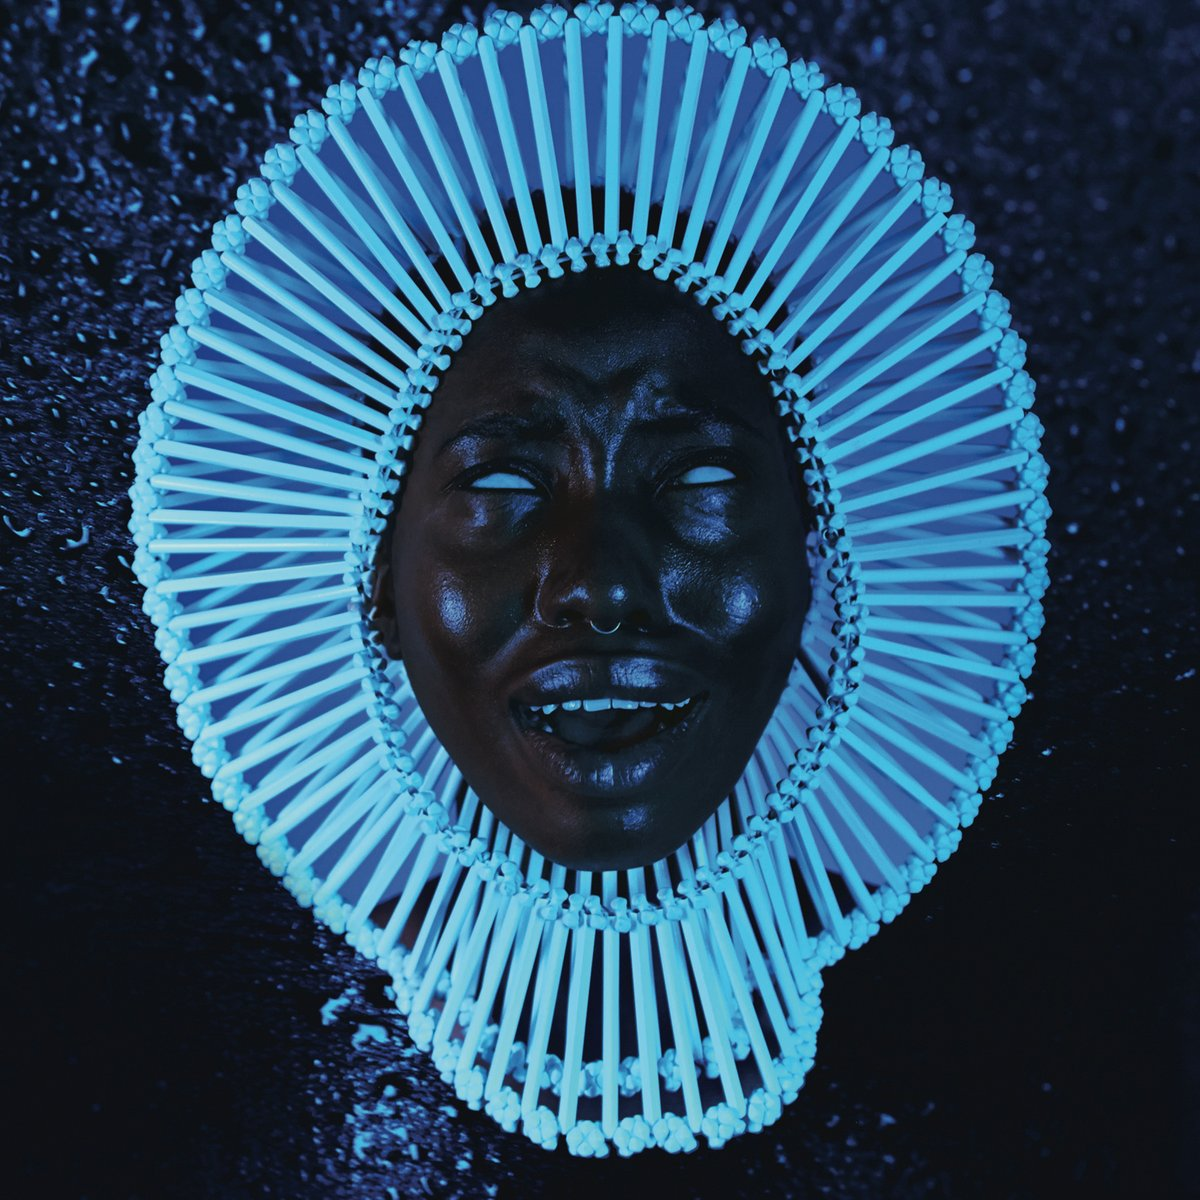 Thoughts: Awaken My Love, by Childish Gambino